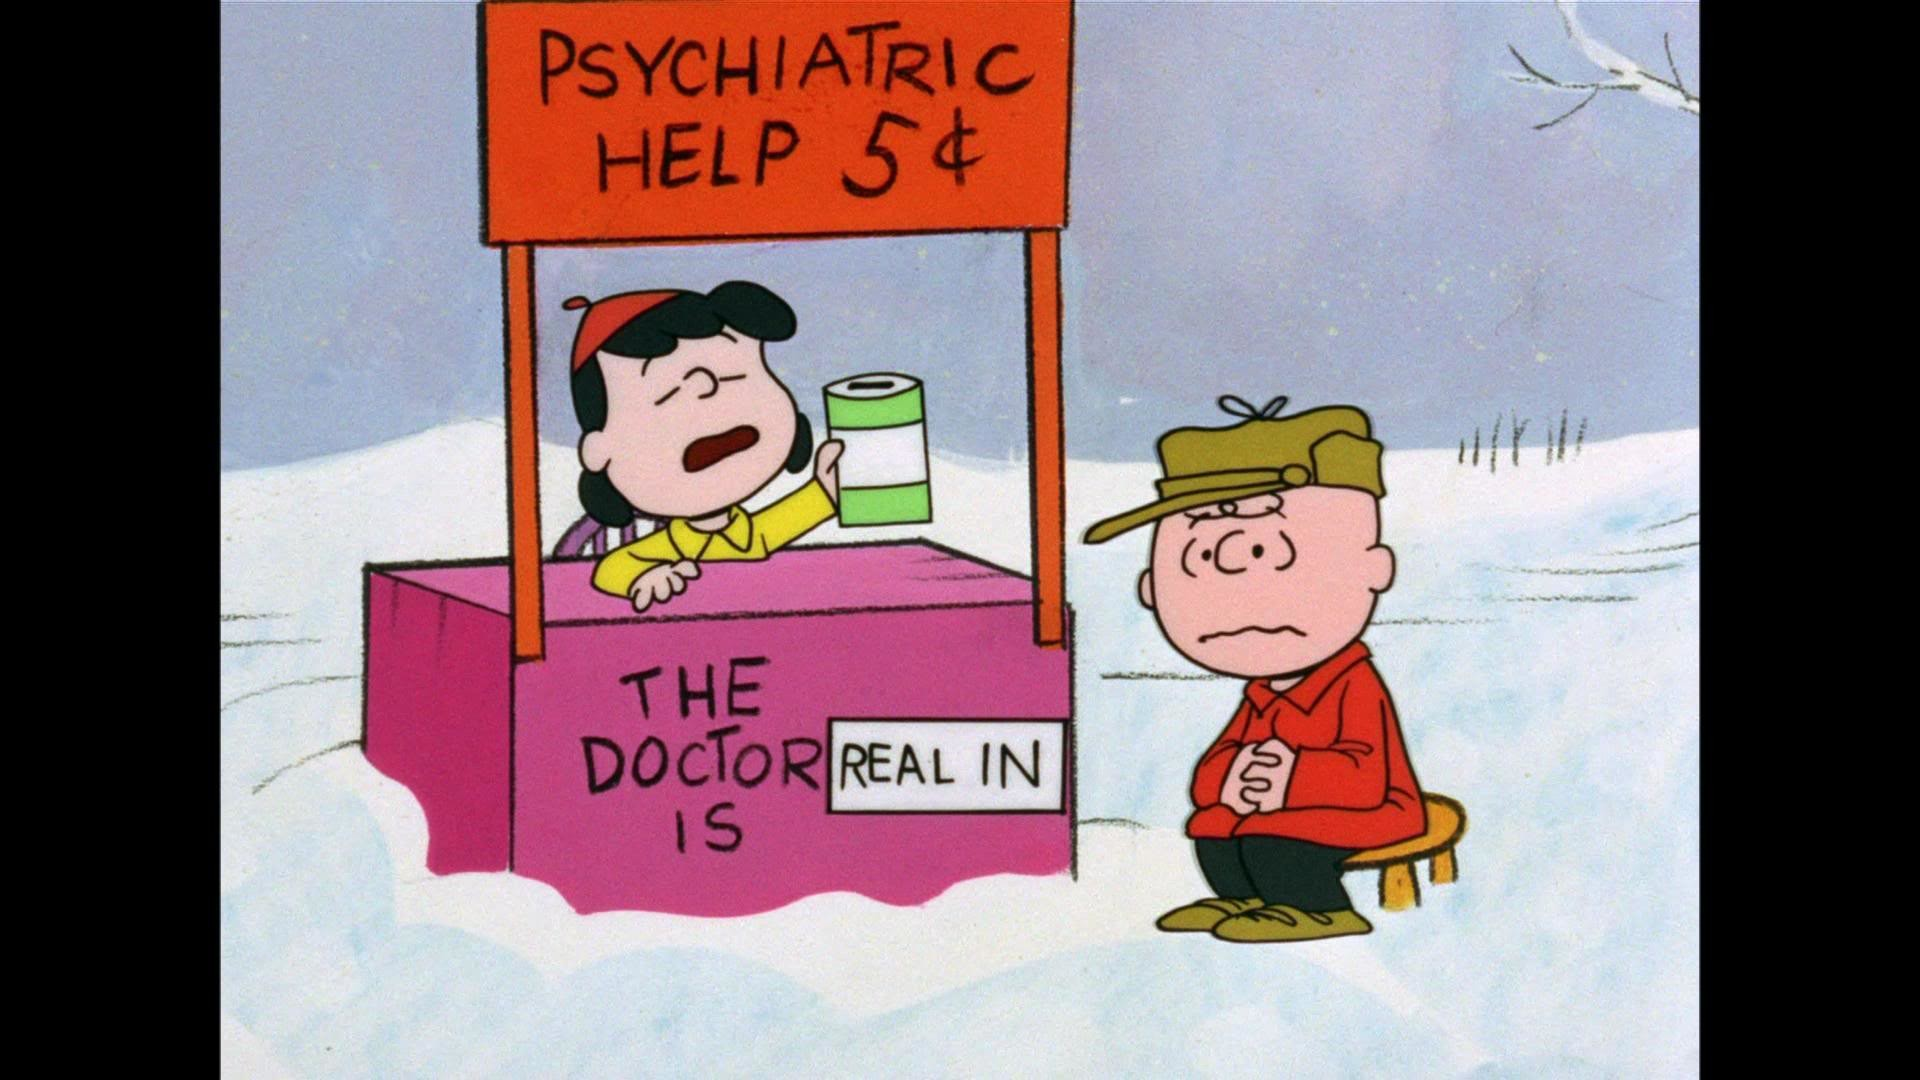 1920x1080 charlie brown xmas desktop wallpaper - www.